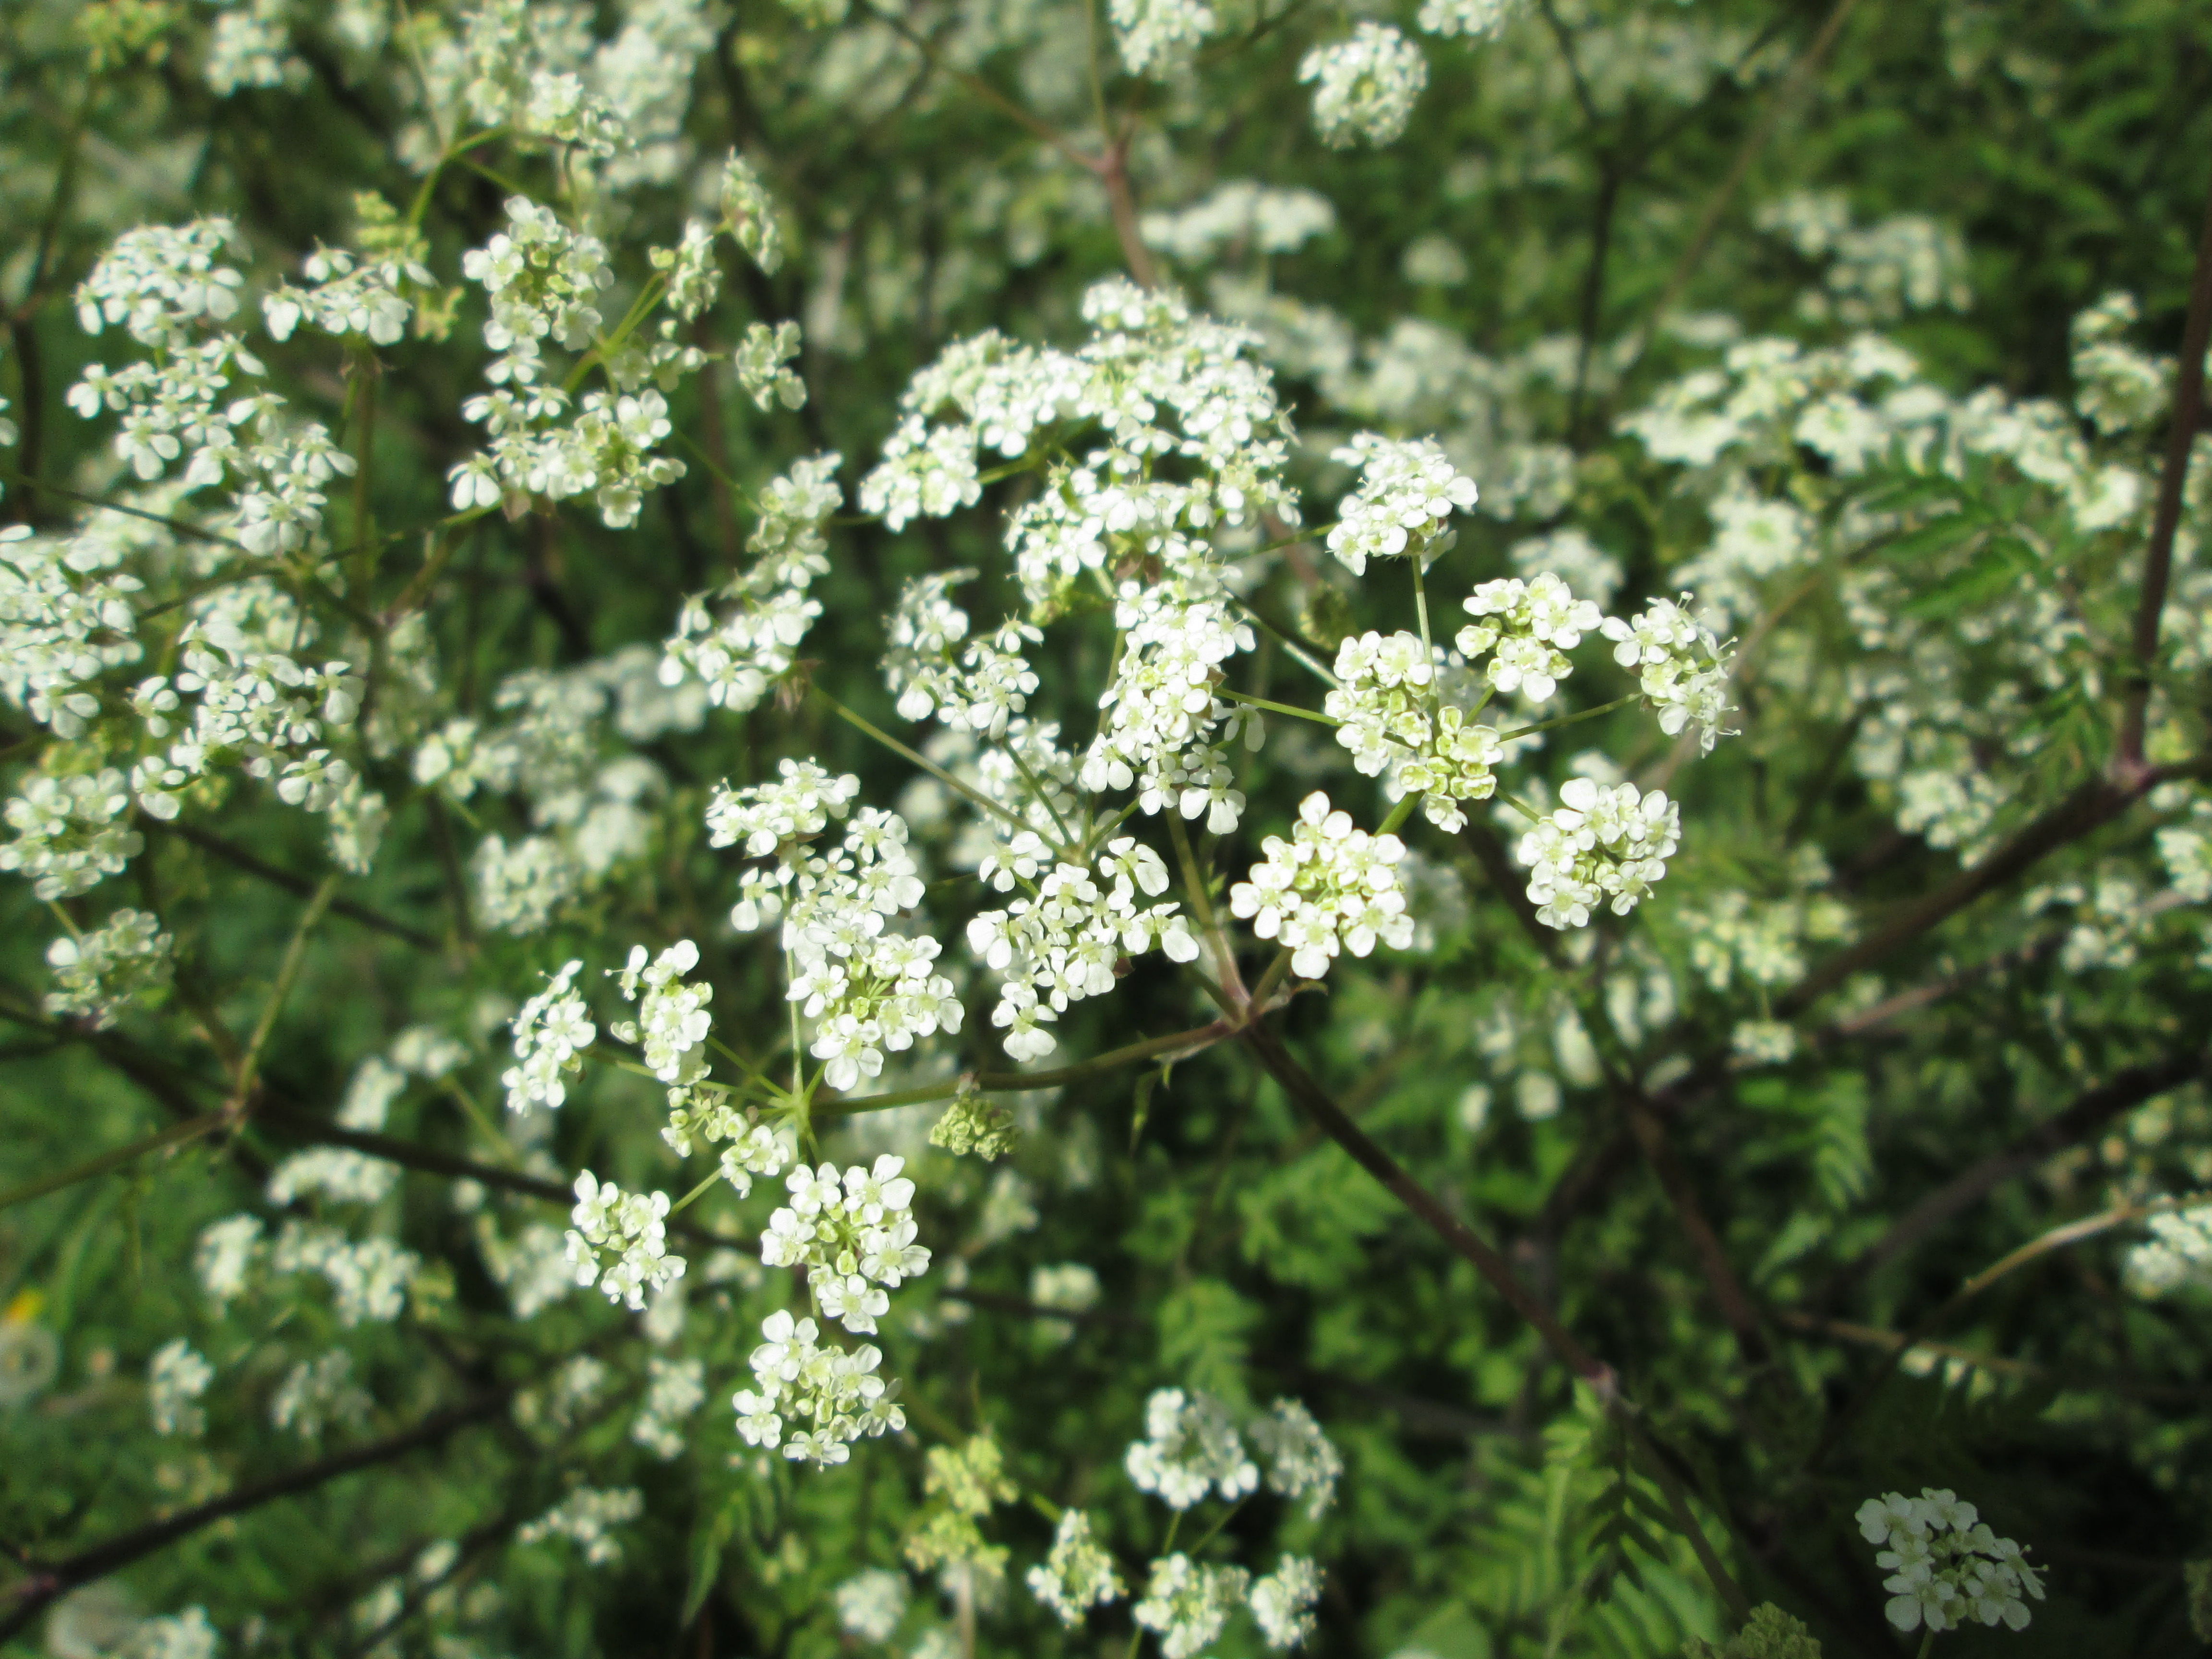 Cow parsley shawsseasonalliving the attractive white flowers may also tempt flower arrangers but the major disadvantage is that it sheds messy small petals so it is understandable that mightylinksfo